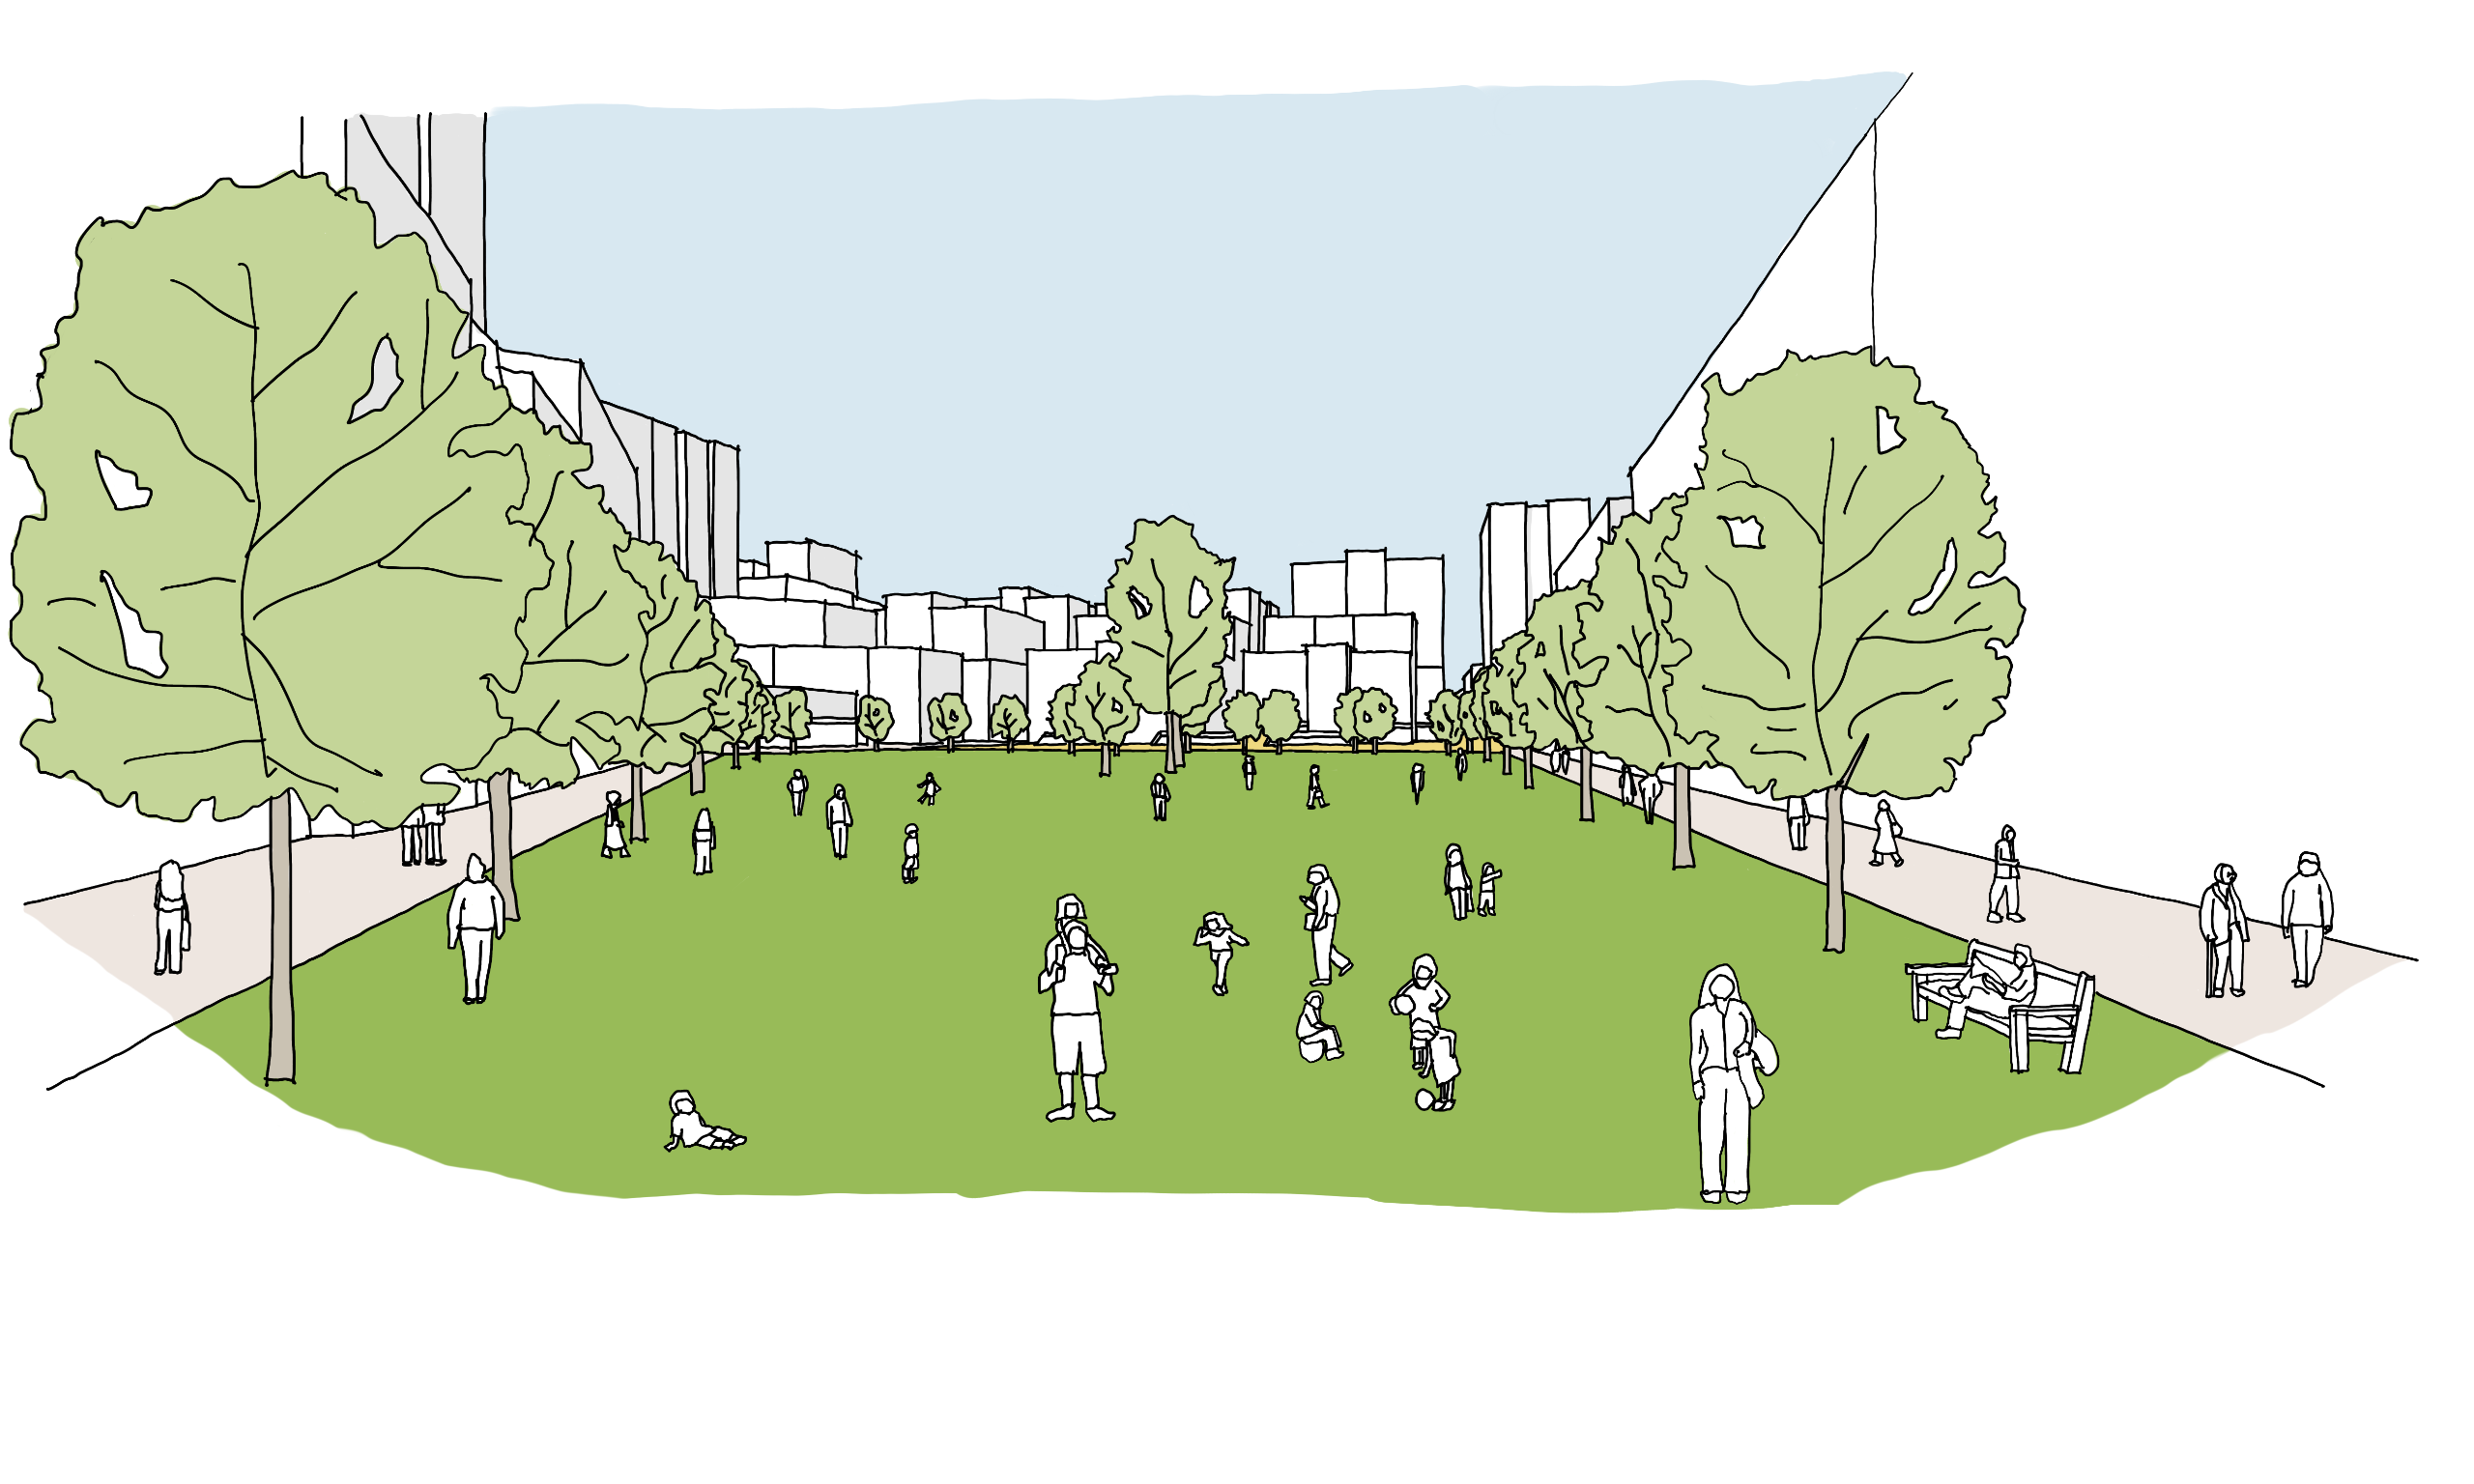 Artist's impression of the view looking north from the southern end of the new neighbourhood park in Arden Central. Indicative only for illustrative purposes.